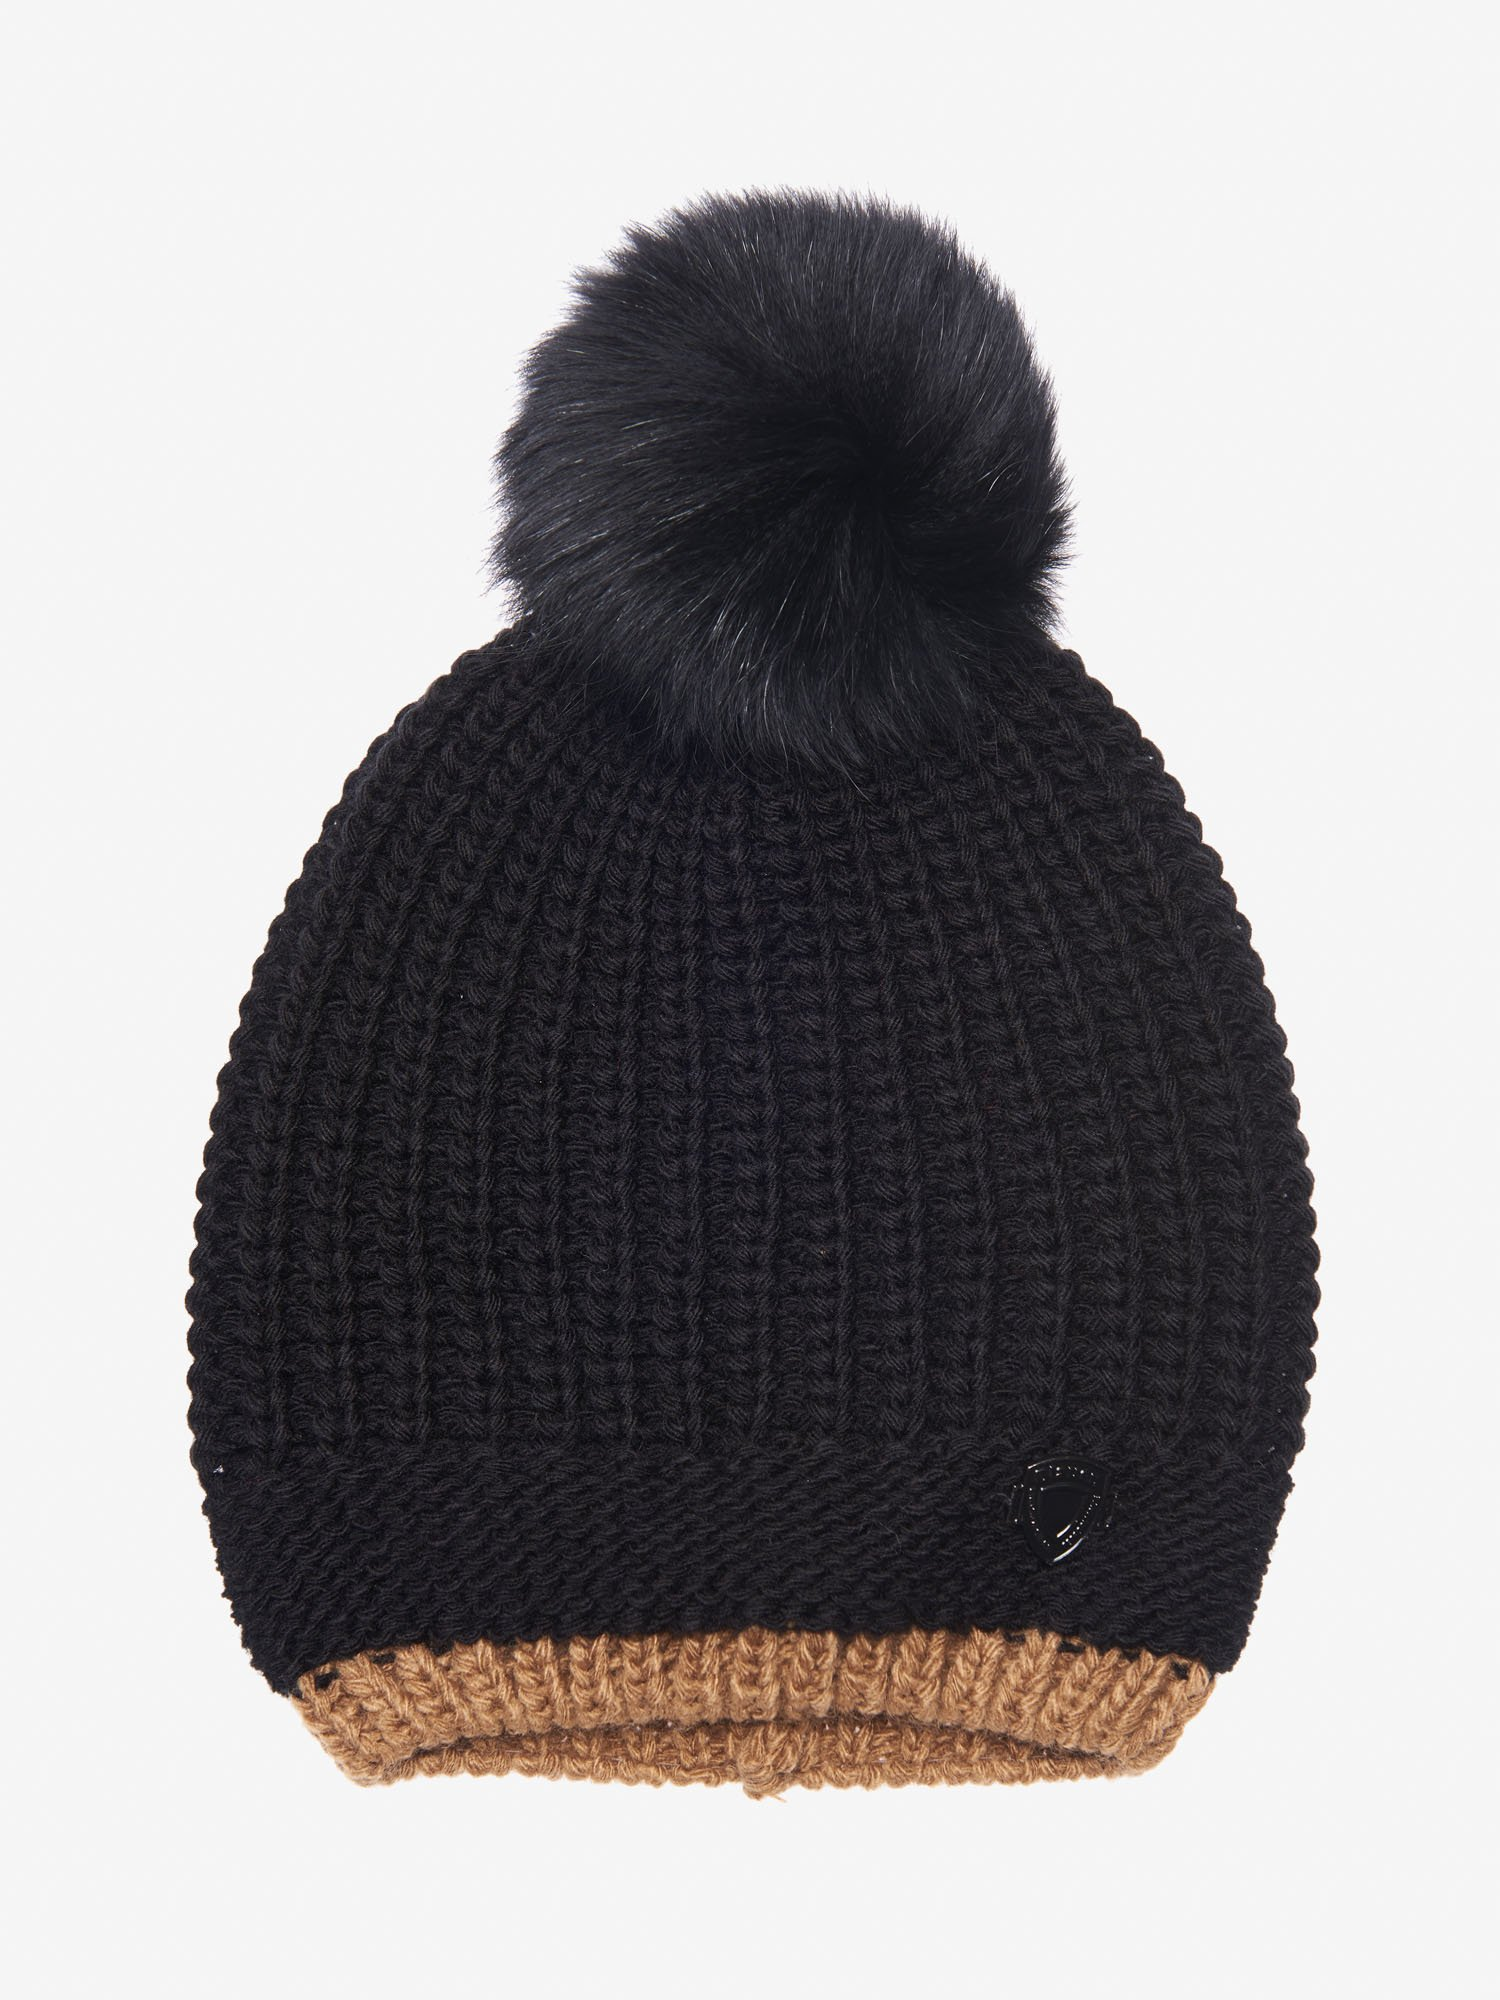 Blauer - HAT WITH POMPOM - Black - Blauer